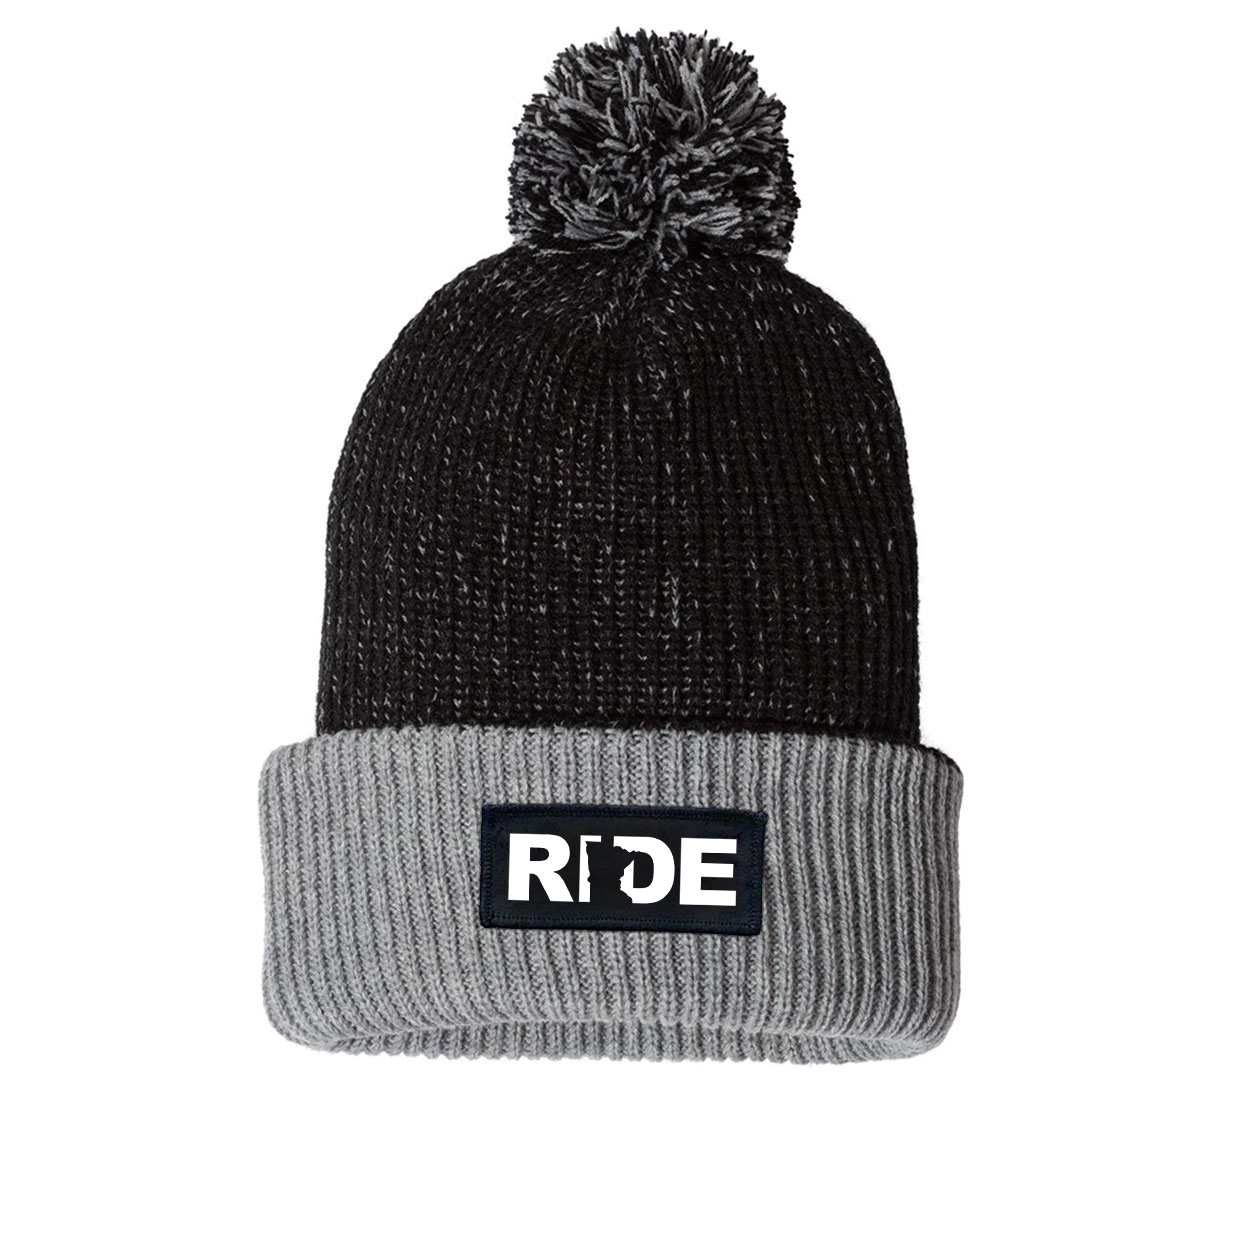 Ride Minnesota Night Out Woven Patch Roll Up Pom Knit Beanie Black/Gray (White Logo)